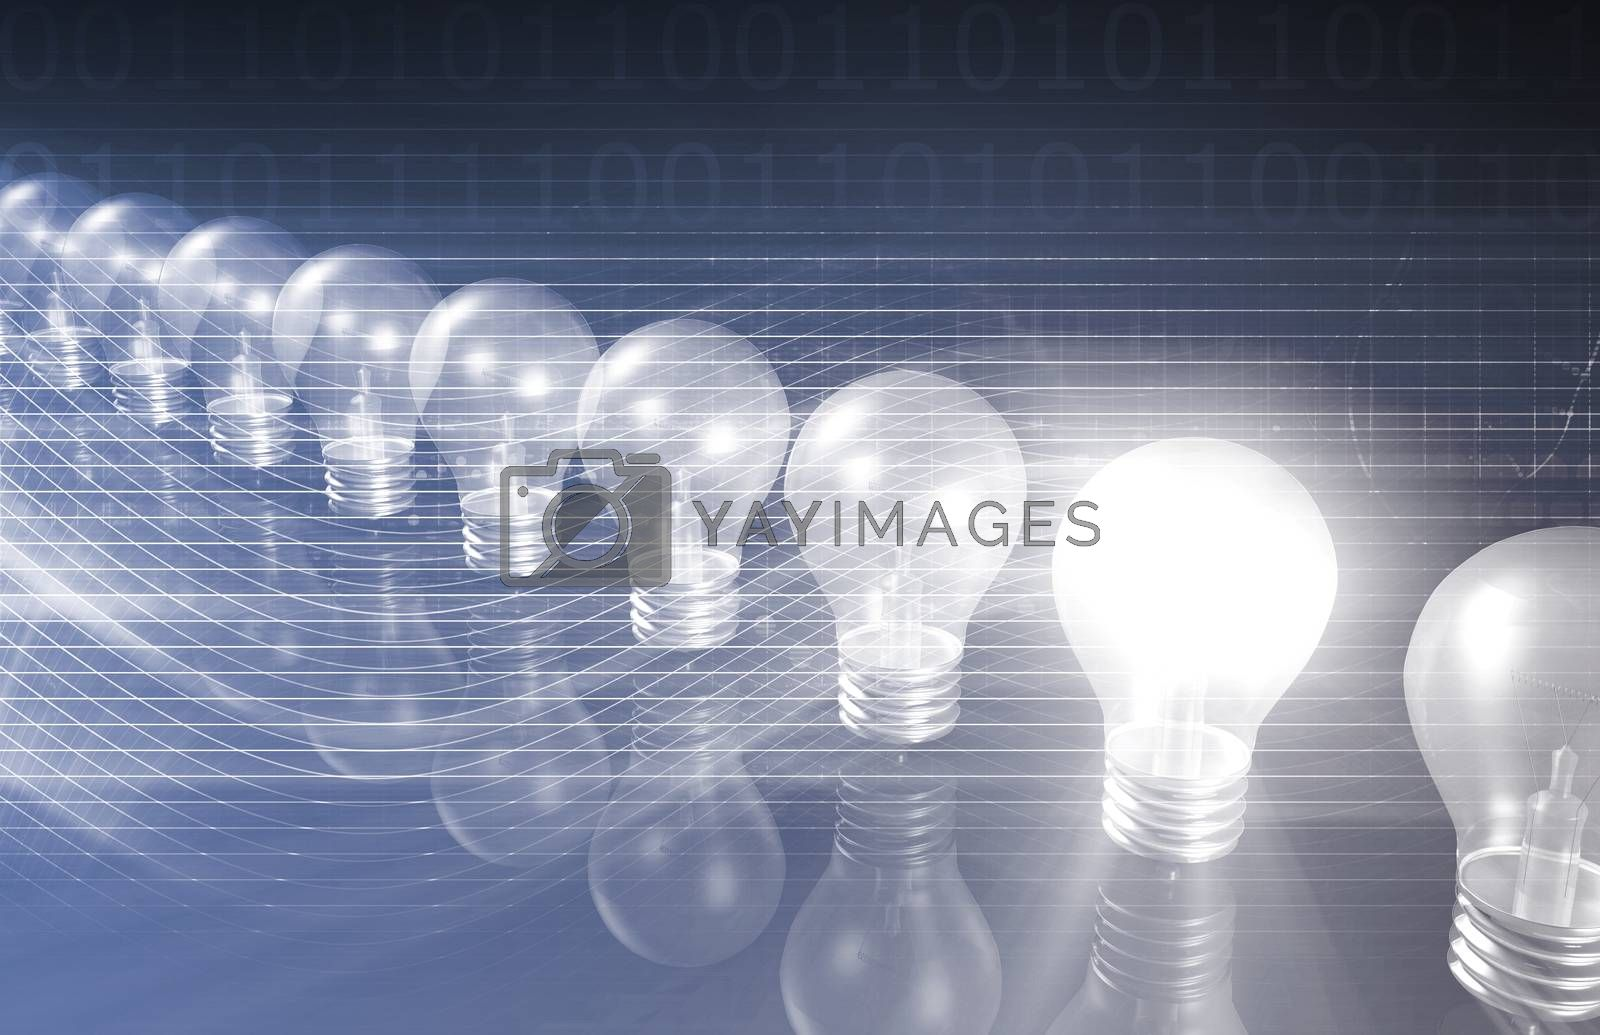 Royalty free image of Innovation Business Concept by kentoh